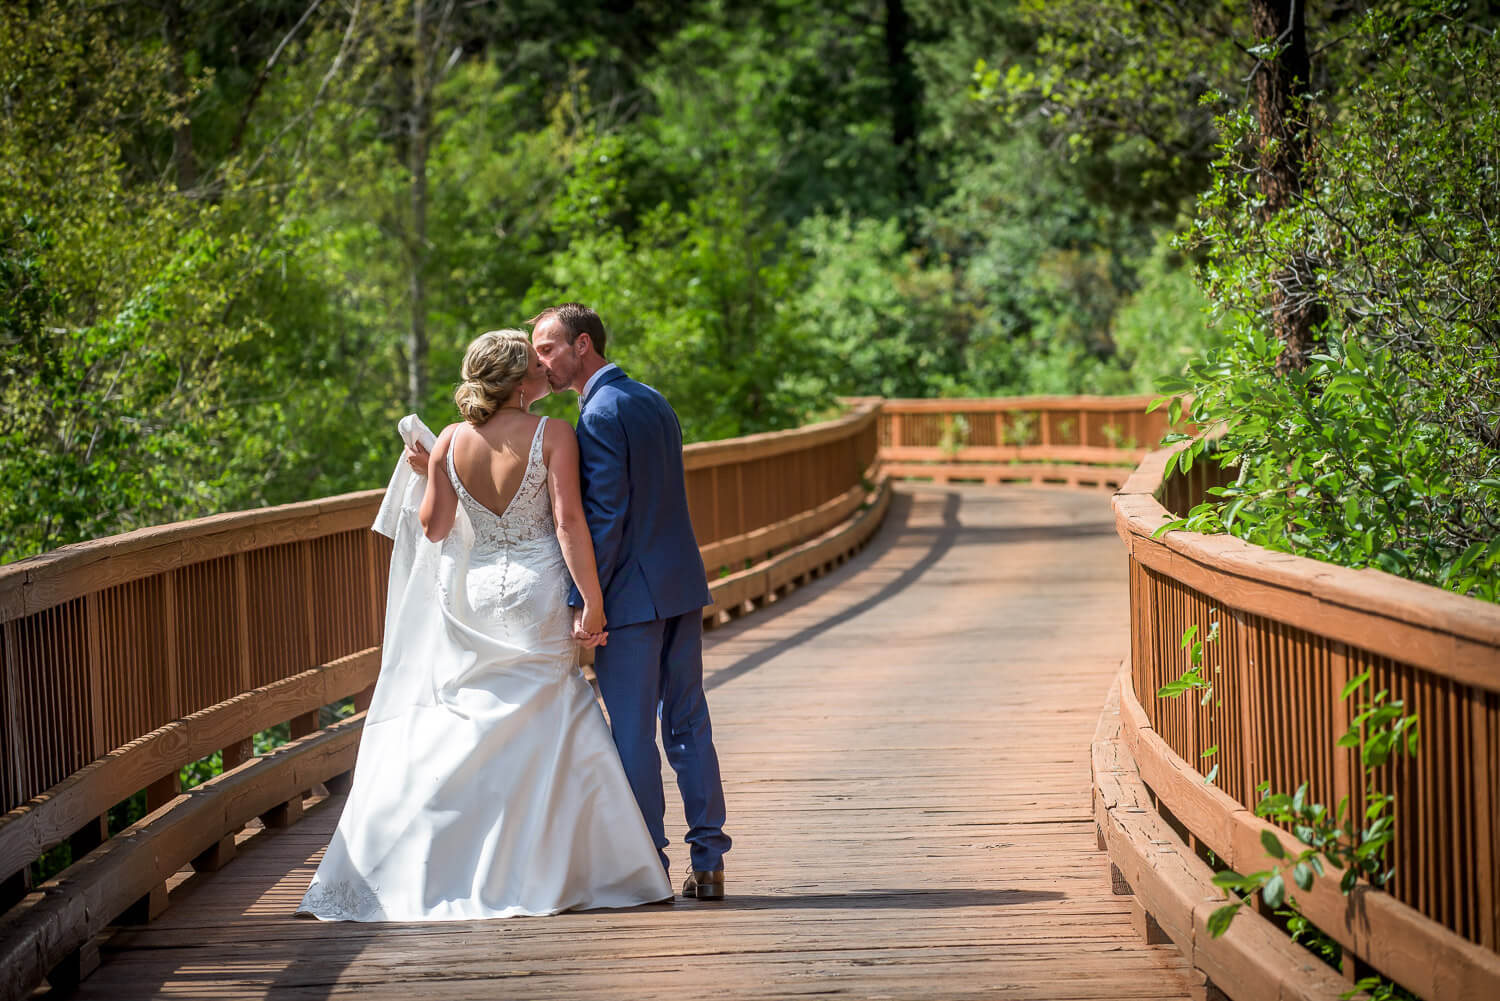 Bride & Groom's first look on the bridge at the Glacier Club for their Durango Wedding pictures